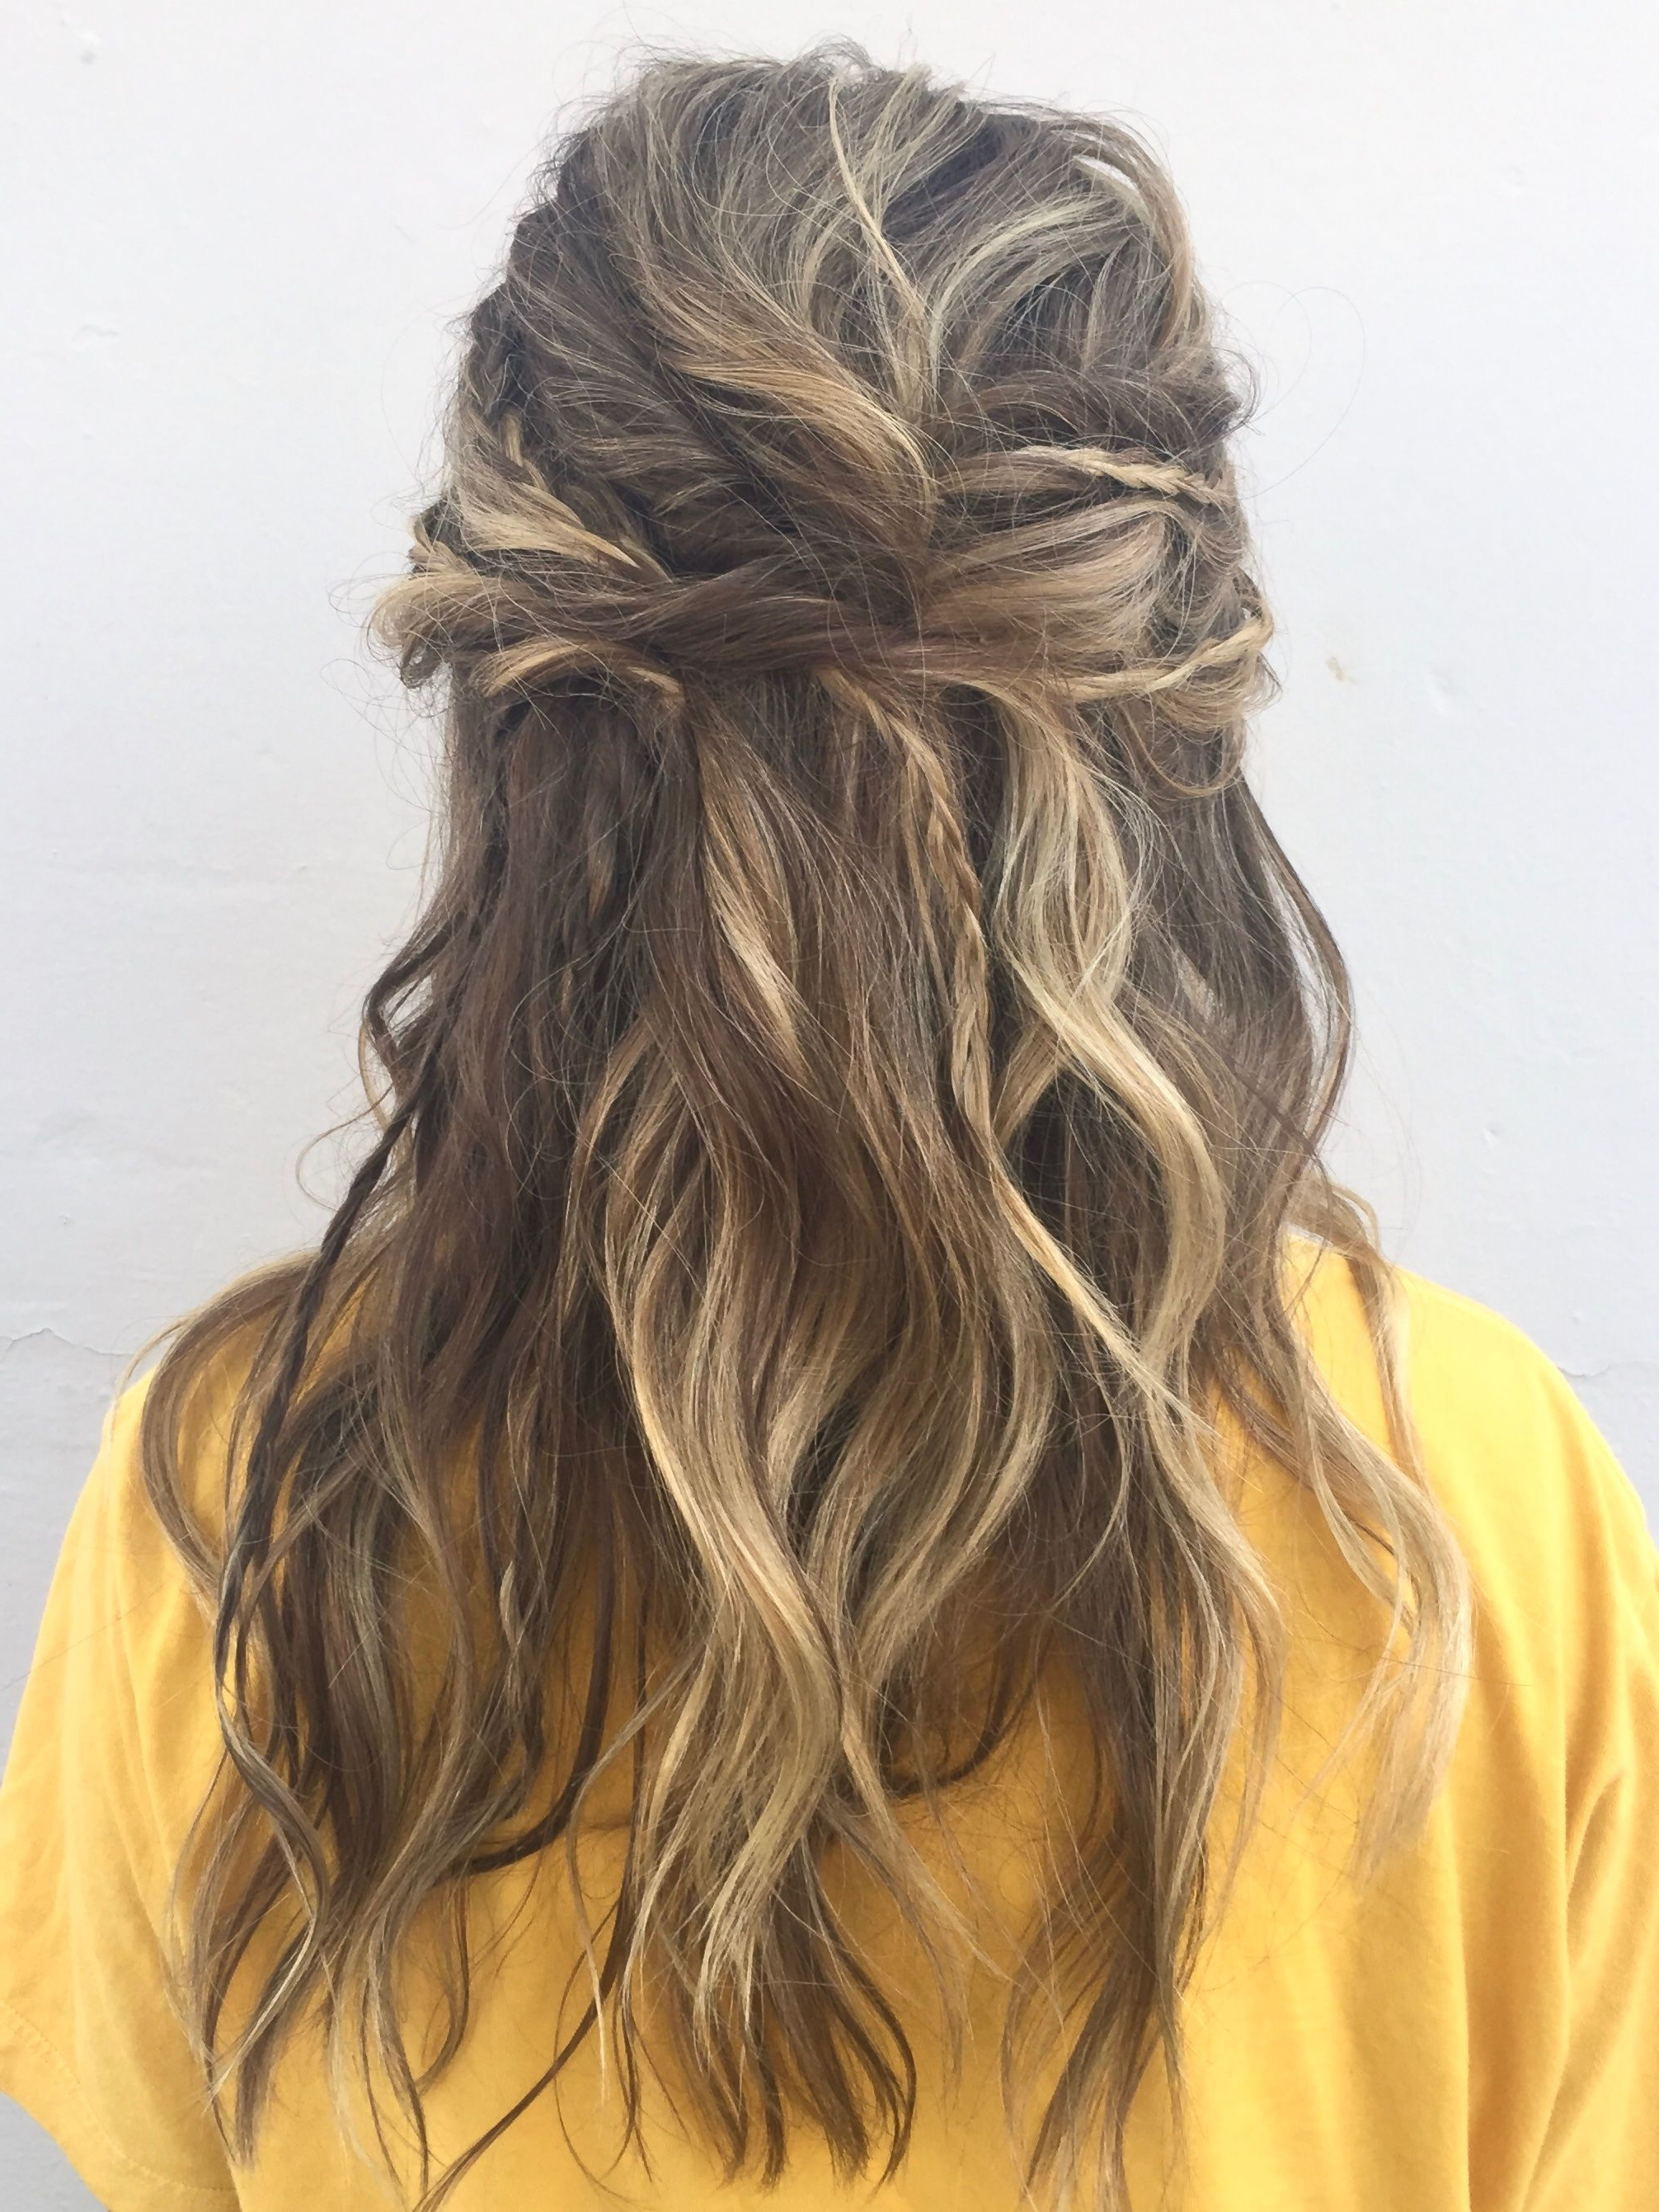 Boho Hair Prom Updo With Braids And Twists And Messy Waves Half Up Within Current Twisting Braided Prom Updos (View 16 of 20)